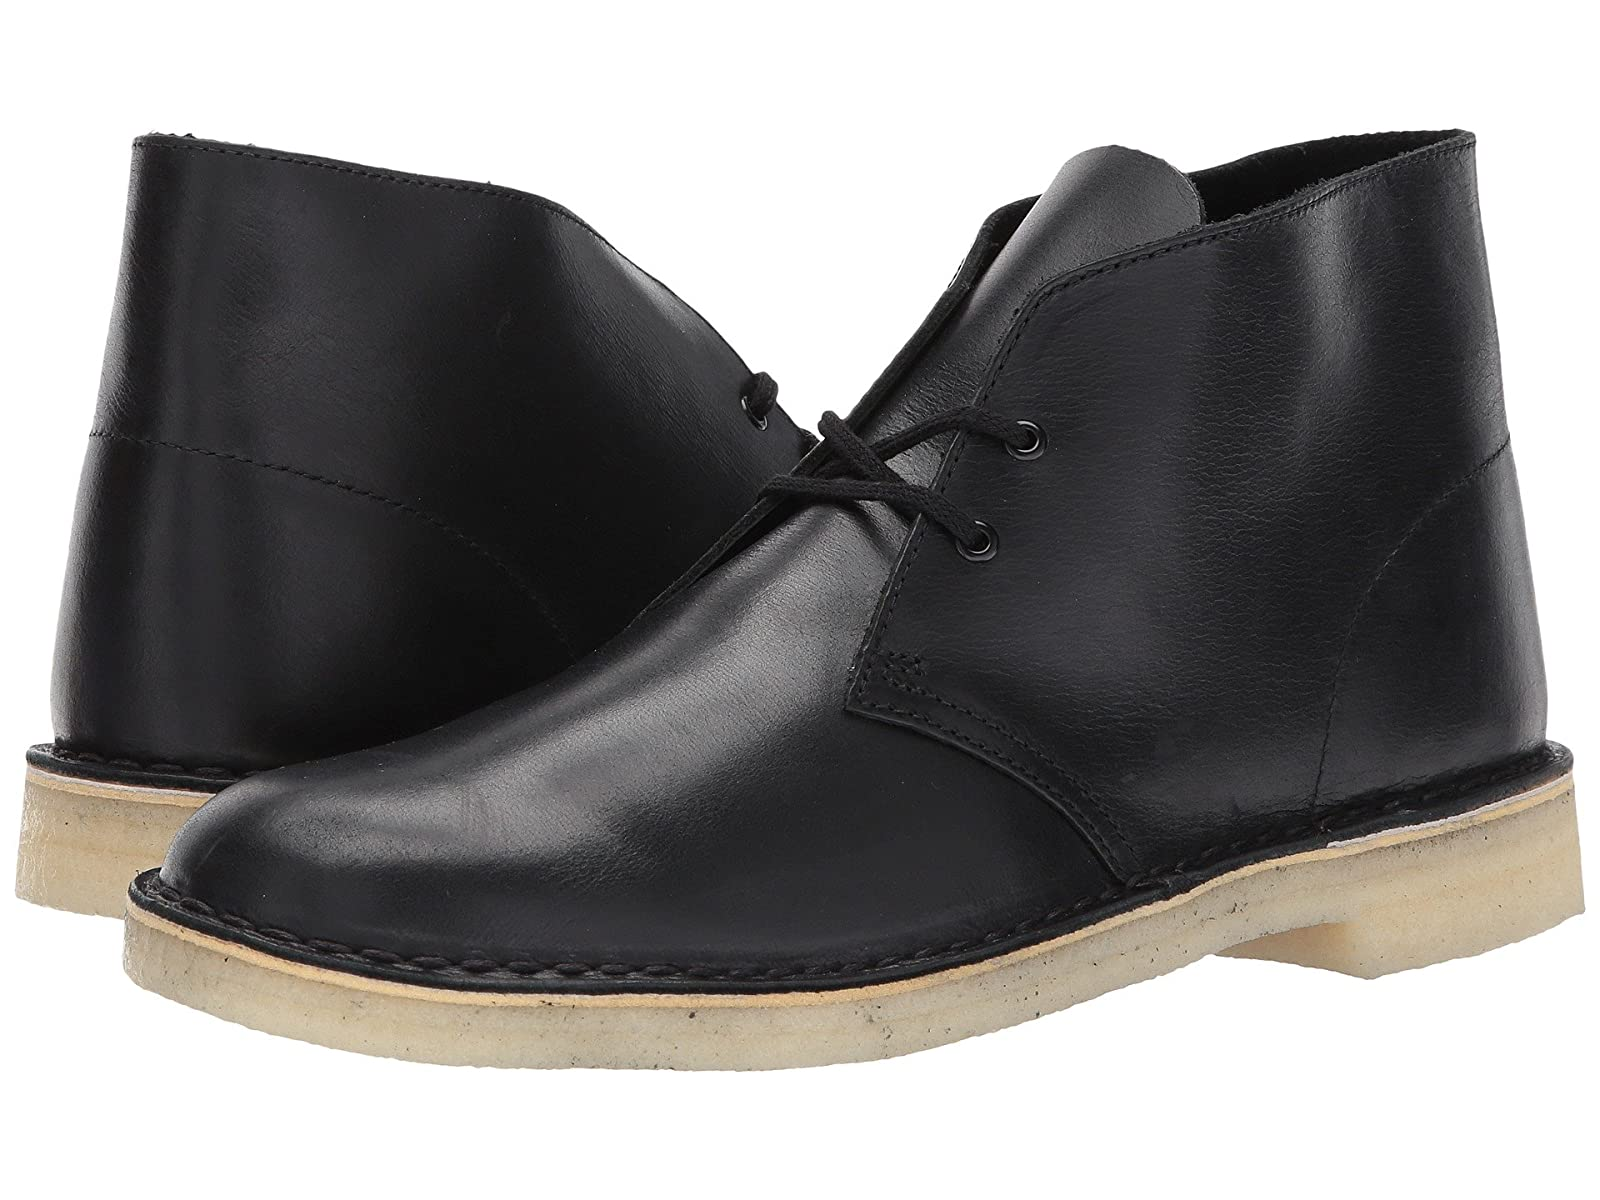 Clarks Desert BootCheap and distinctive eye-catching shoes